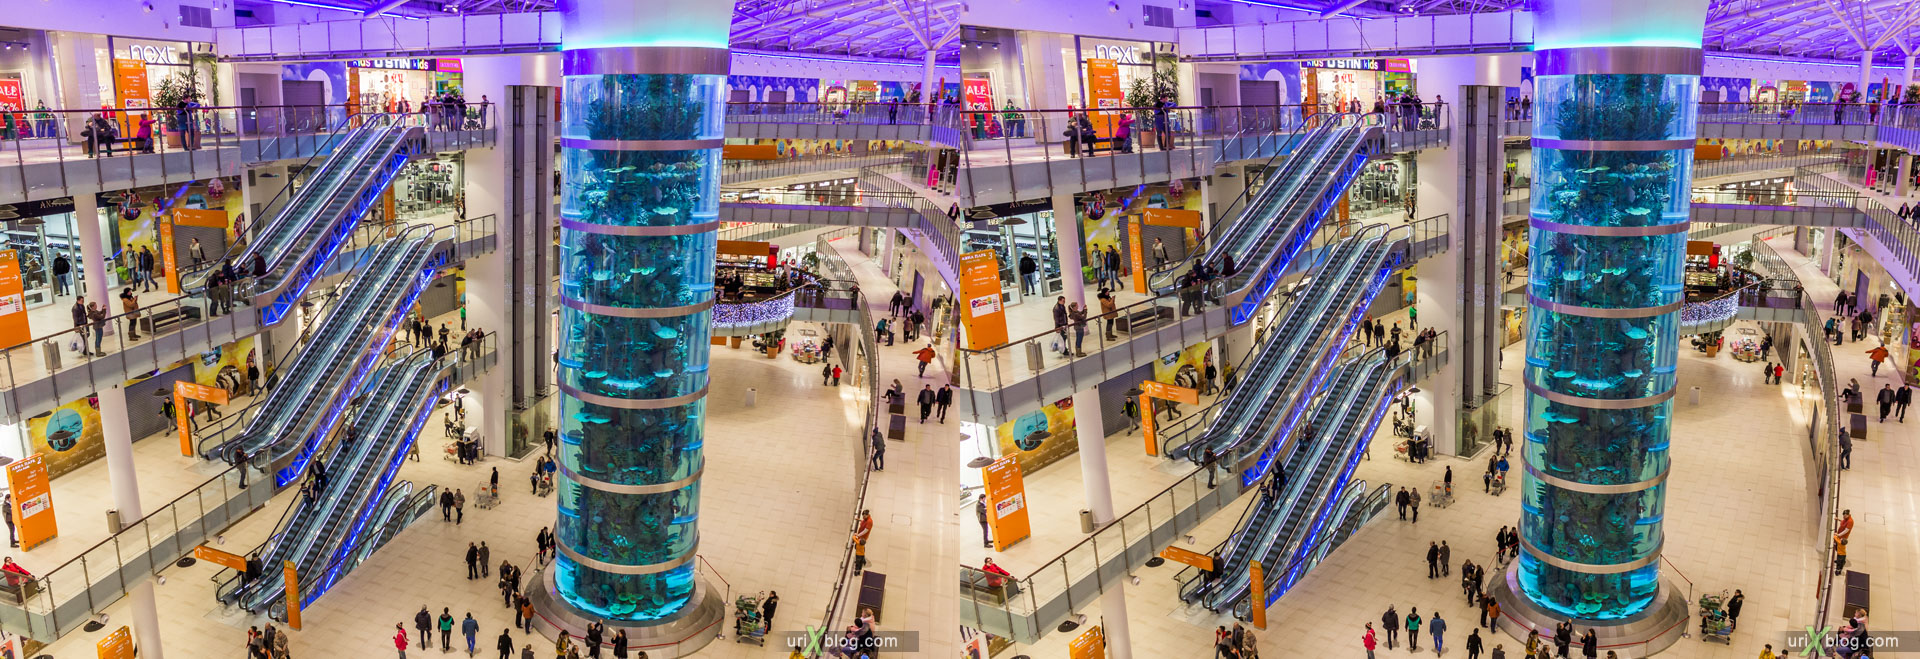 giant aquarium, shopping mall, Aviapark, Khodynka, Moscow, Russia, hyper stereo, 2014, 3D, stereo pair, cross-eyed, crossview, cross view stereo pair, stereoscopic